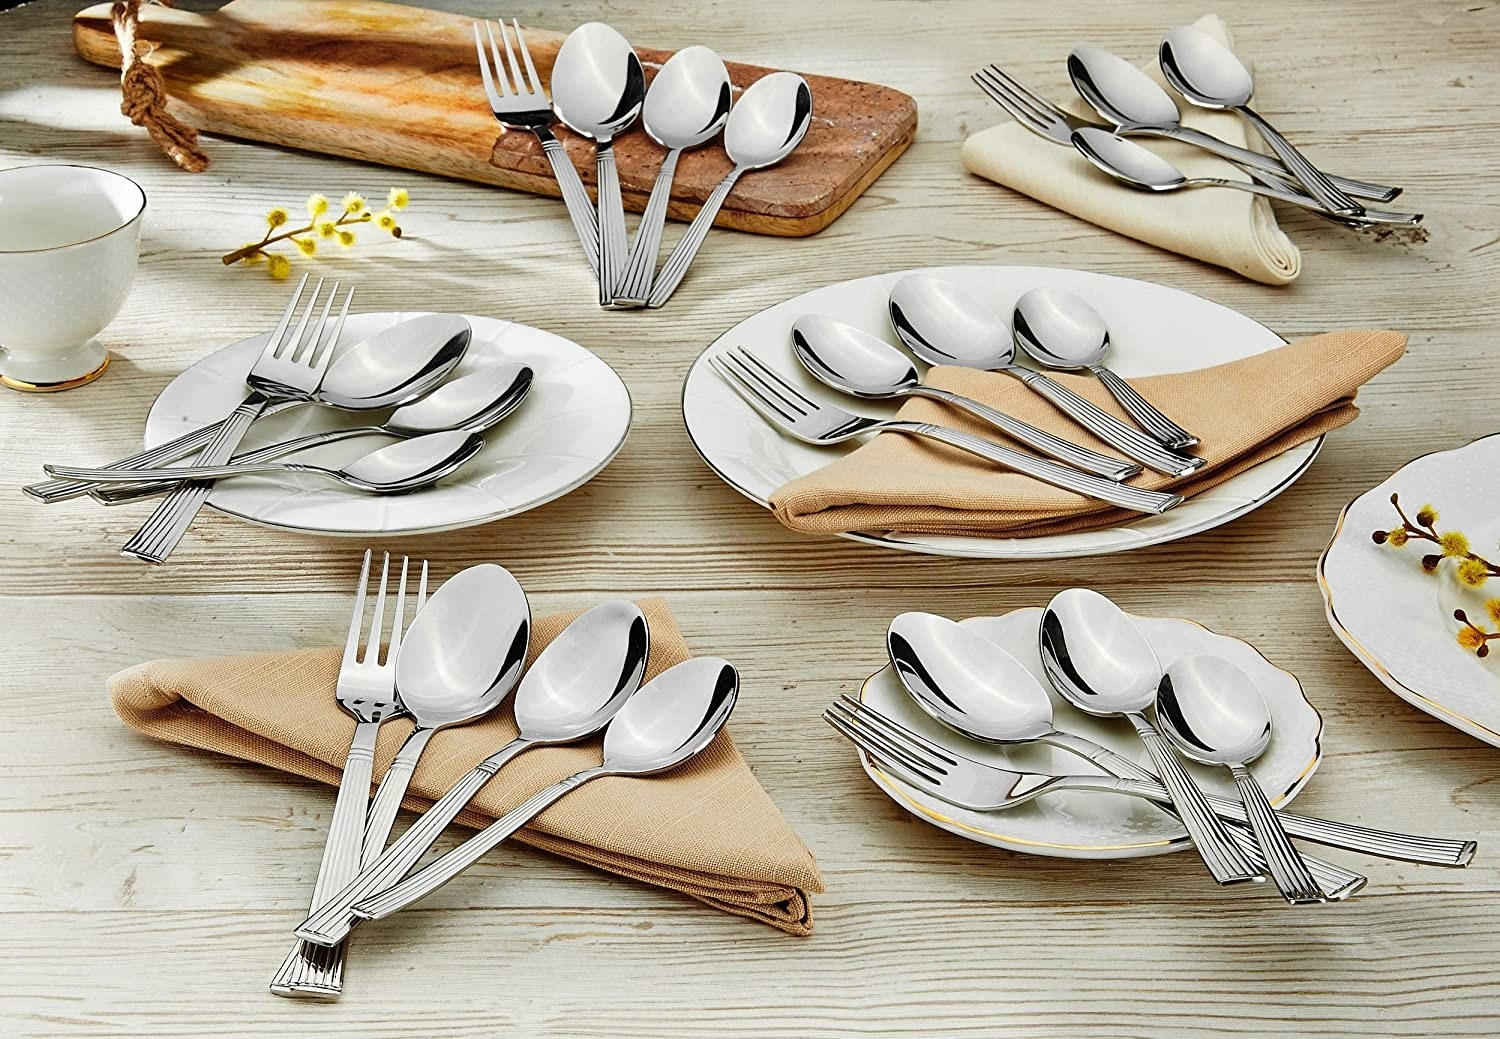 Sets of cutlery with forks, table spoons, tea spoons and dessert spoons on napkins and plates on a wooden table